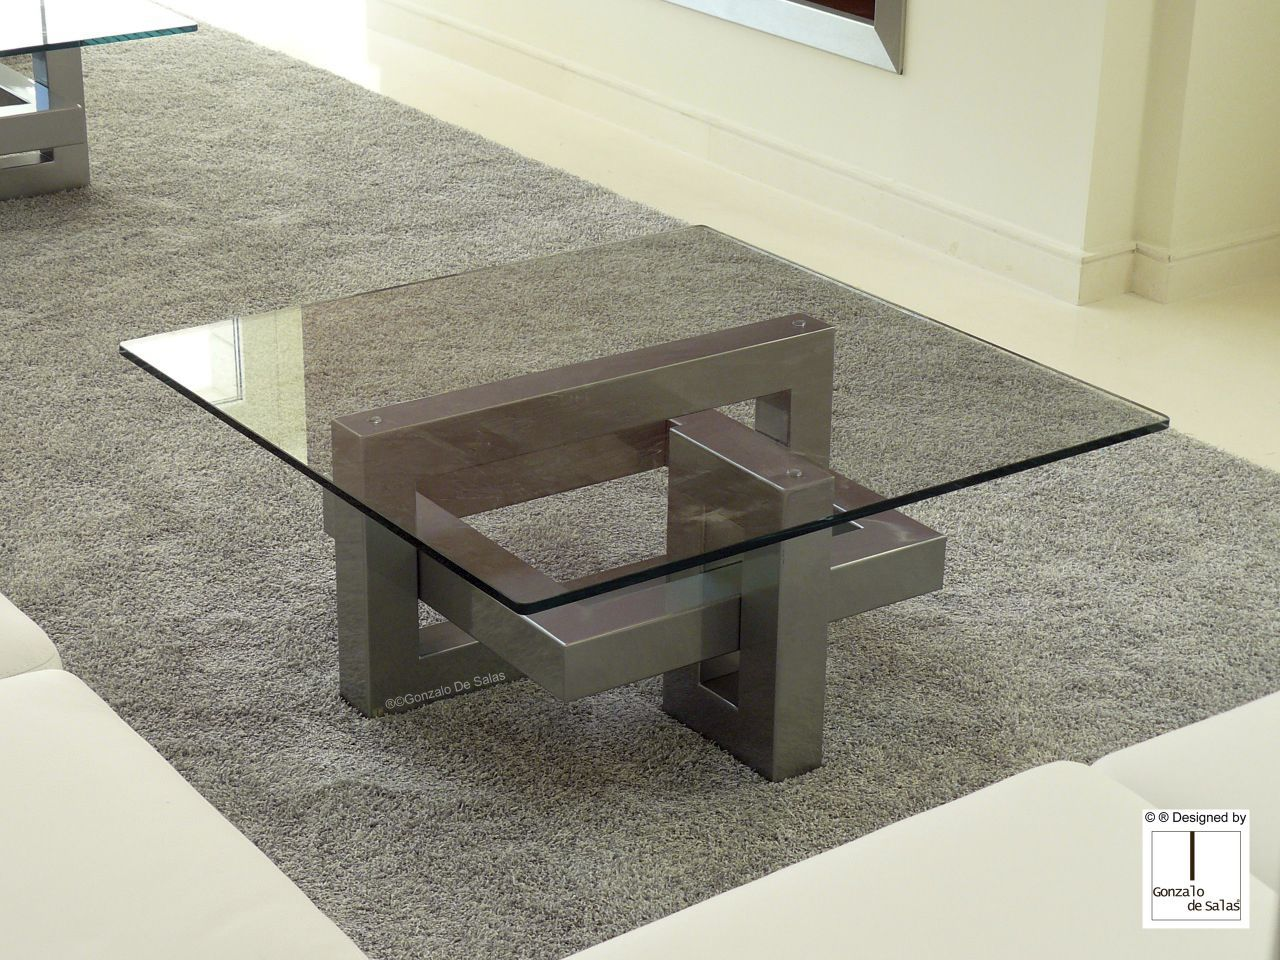 Basse Carrée Verre Table Contemporaine Ios Salas Gonzalo De En rtsCQxhd